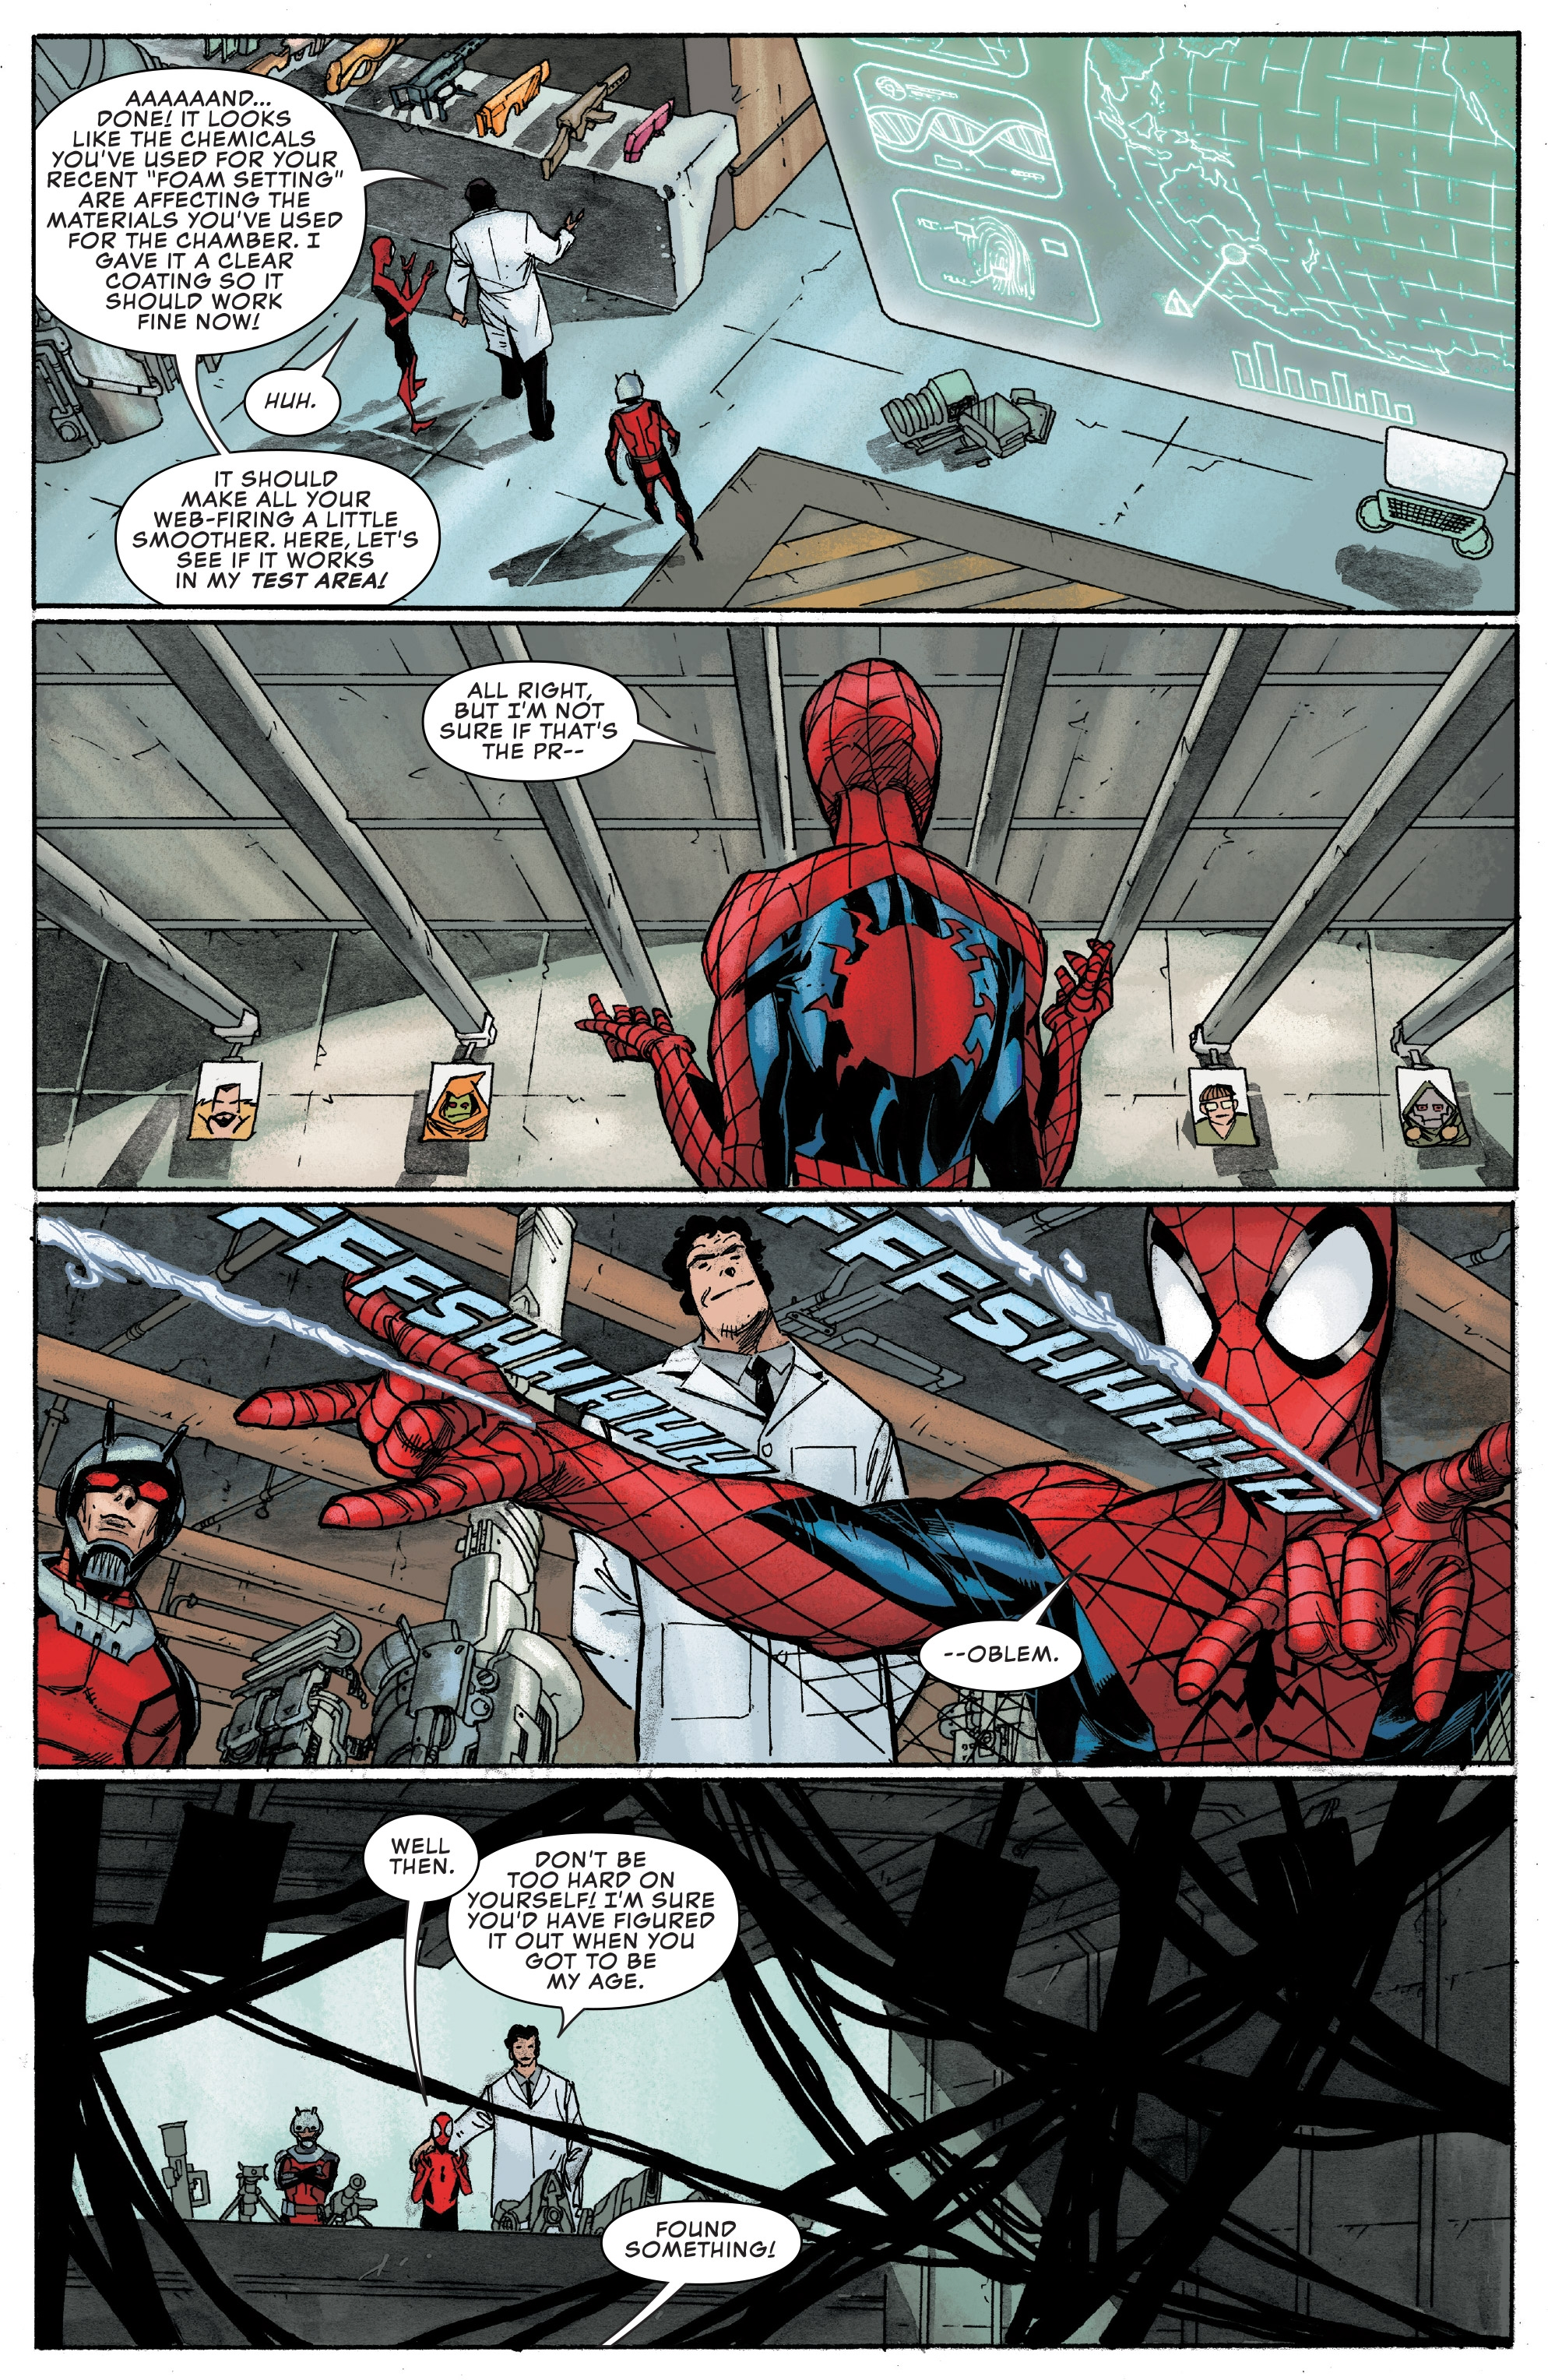 Read online Peter Parker: The Spectacular Spider-Man comic -  Issue #1 - 12